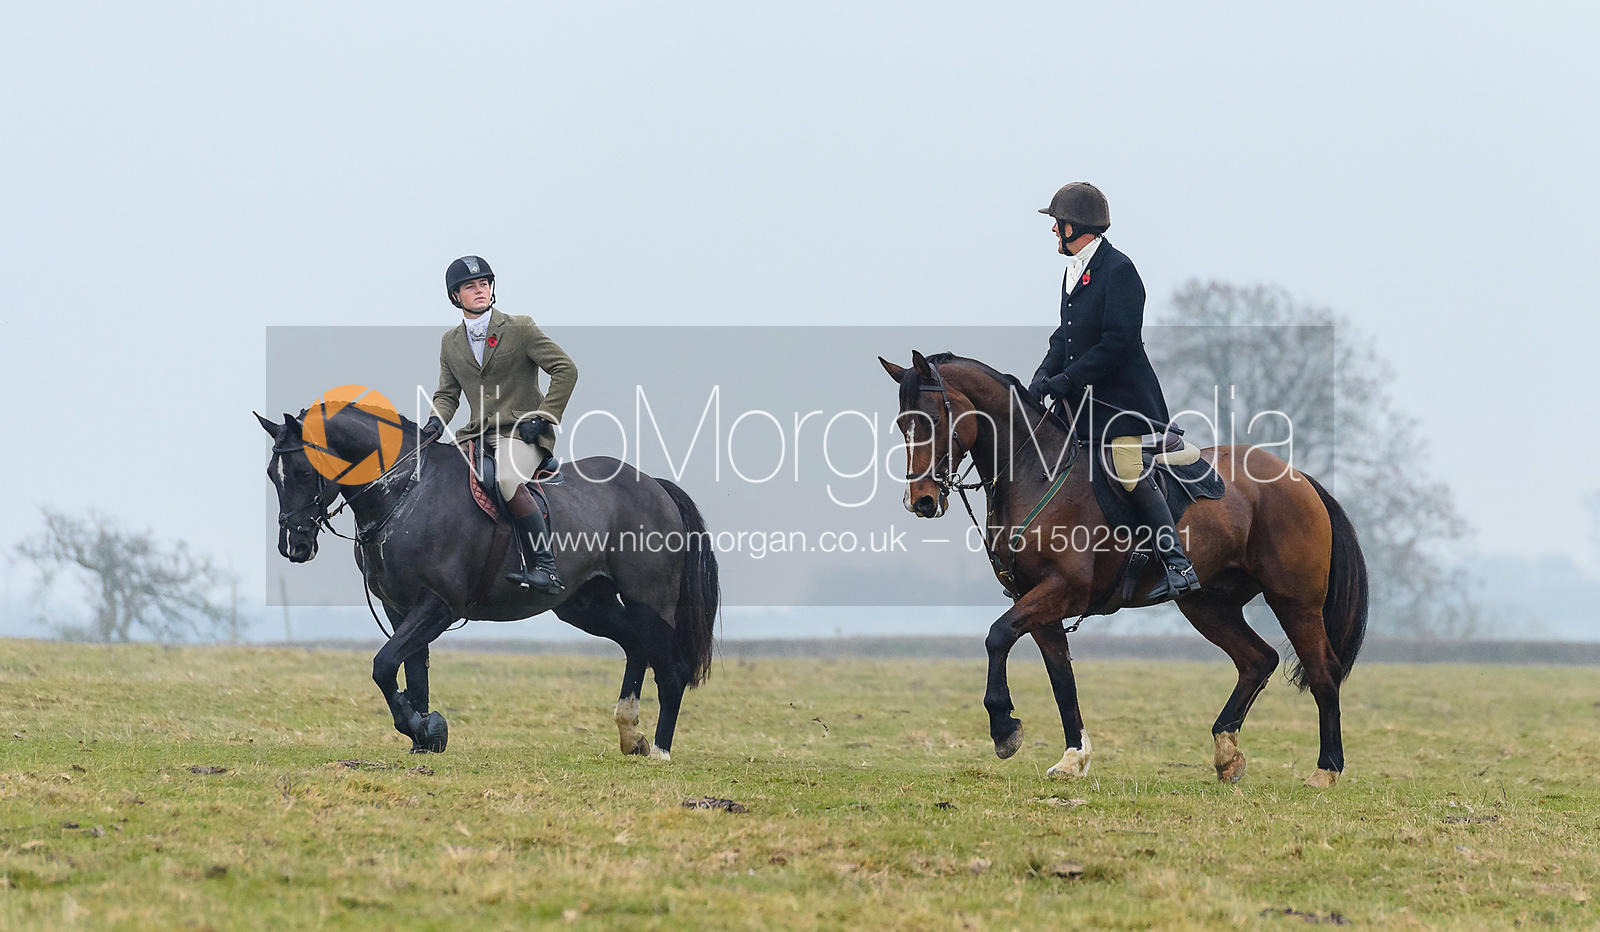 Alexander Tordoff, Charlie Smith above Braunston. The Cottesmore Hunt at Braunston